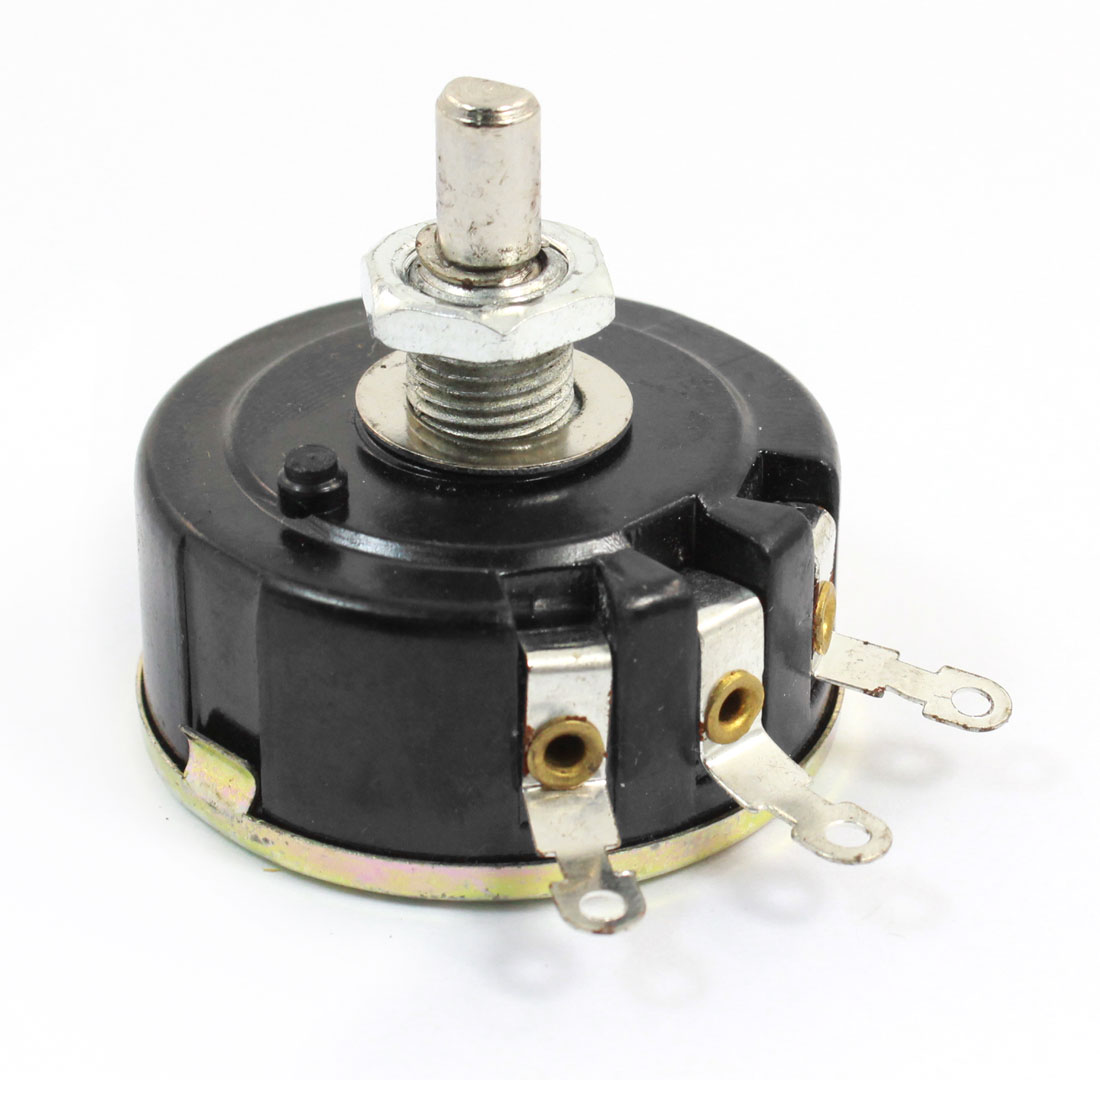 WX111 030 1.5K Ohm 5% 3W 6mm D Shaft 3Pin Wirewound Variable Resistor Potentiometer